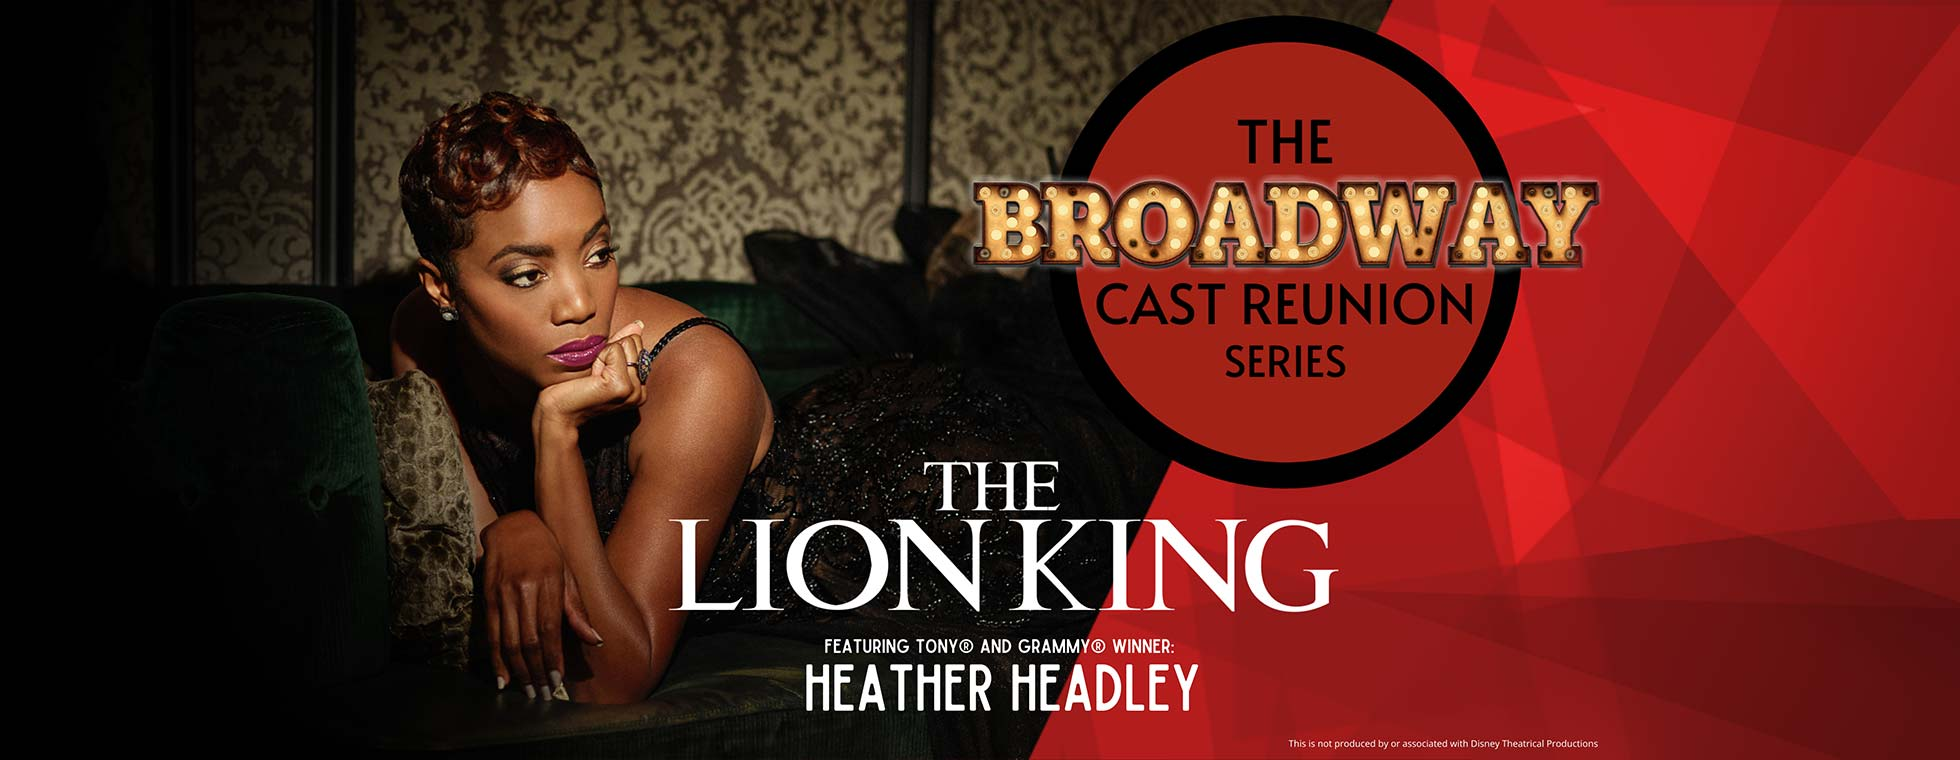 The Broadway Cast Reunion Series: The Lion King. Featuring Tony and Grammy winner Heather Headley.